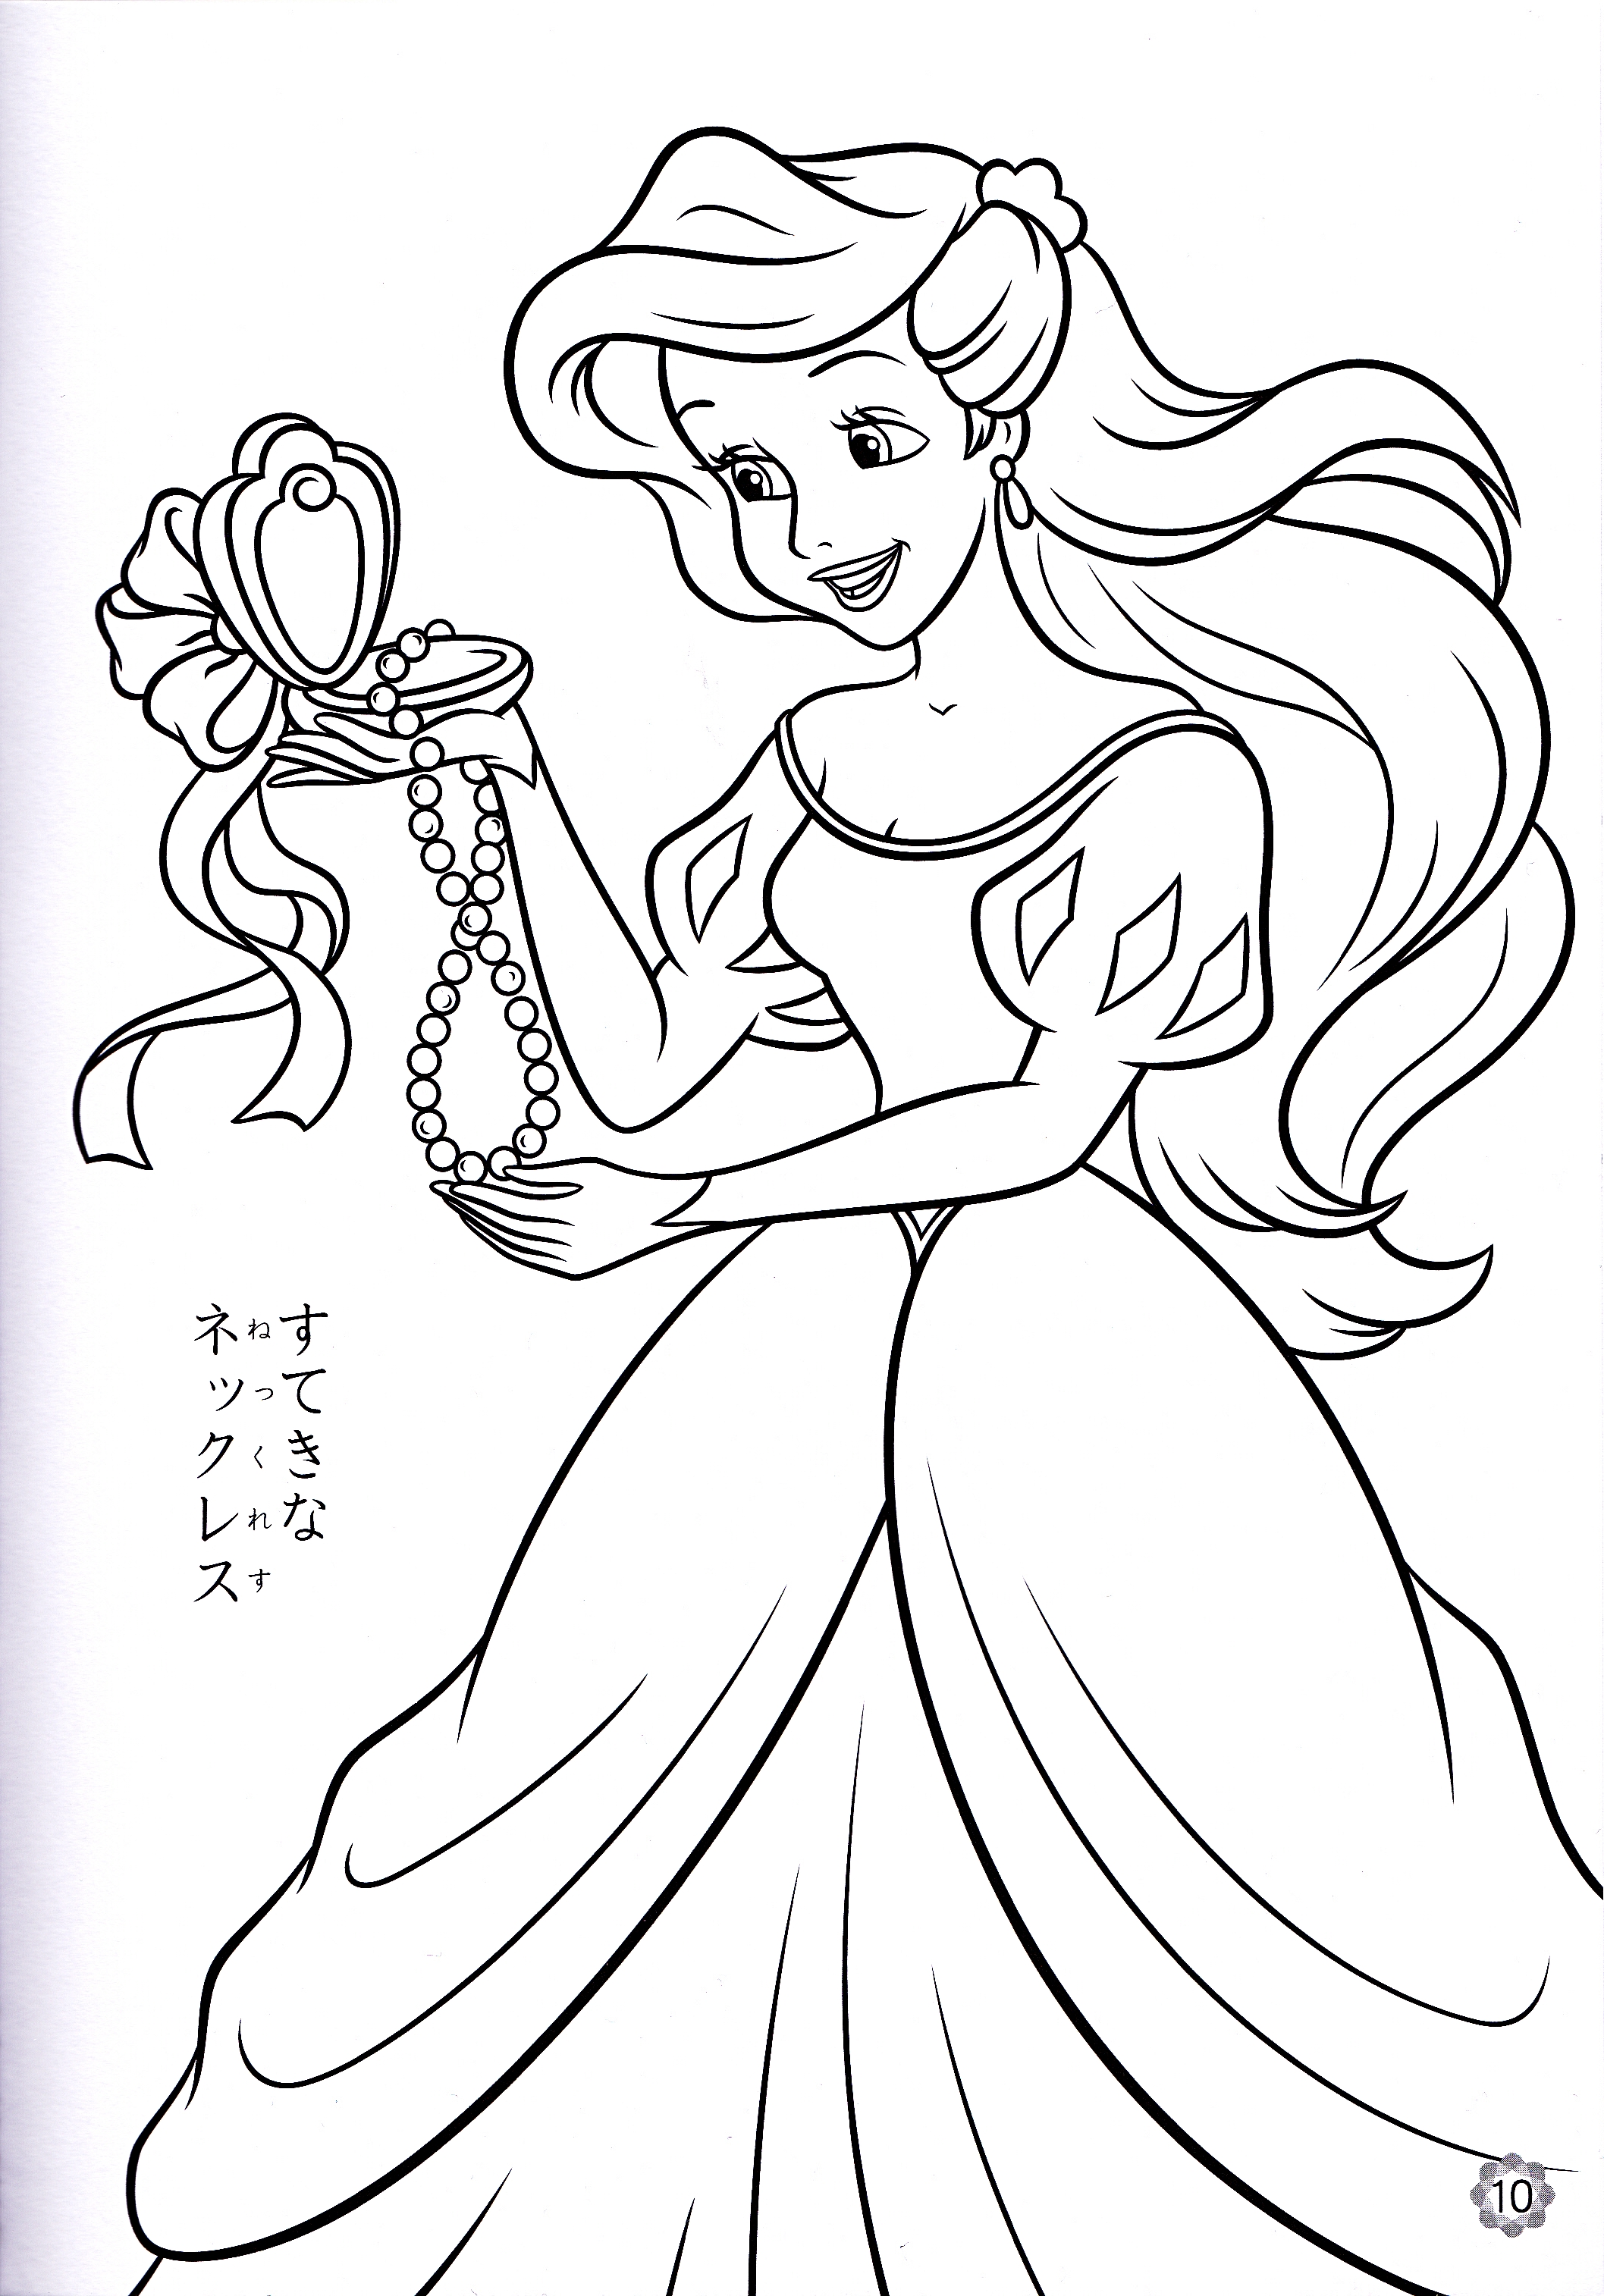 Coloring Pages Walt Disney : Walt disney coloring pages princess ariel